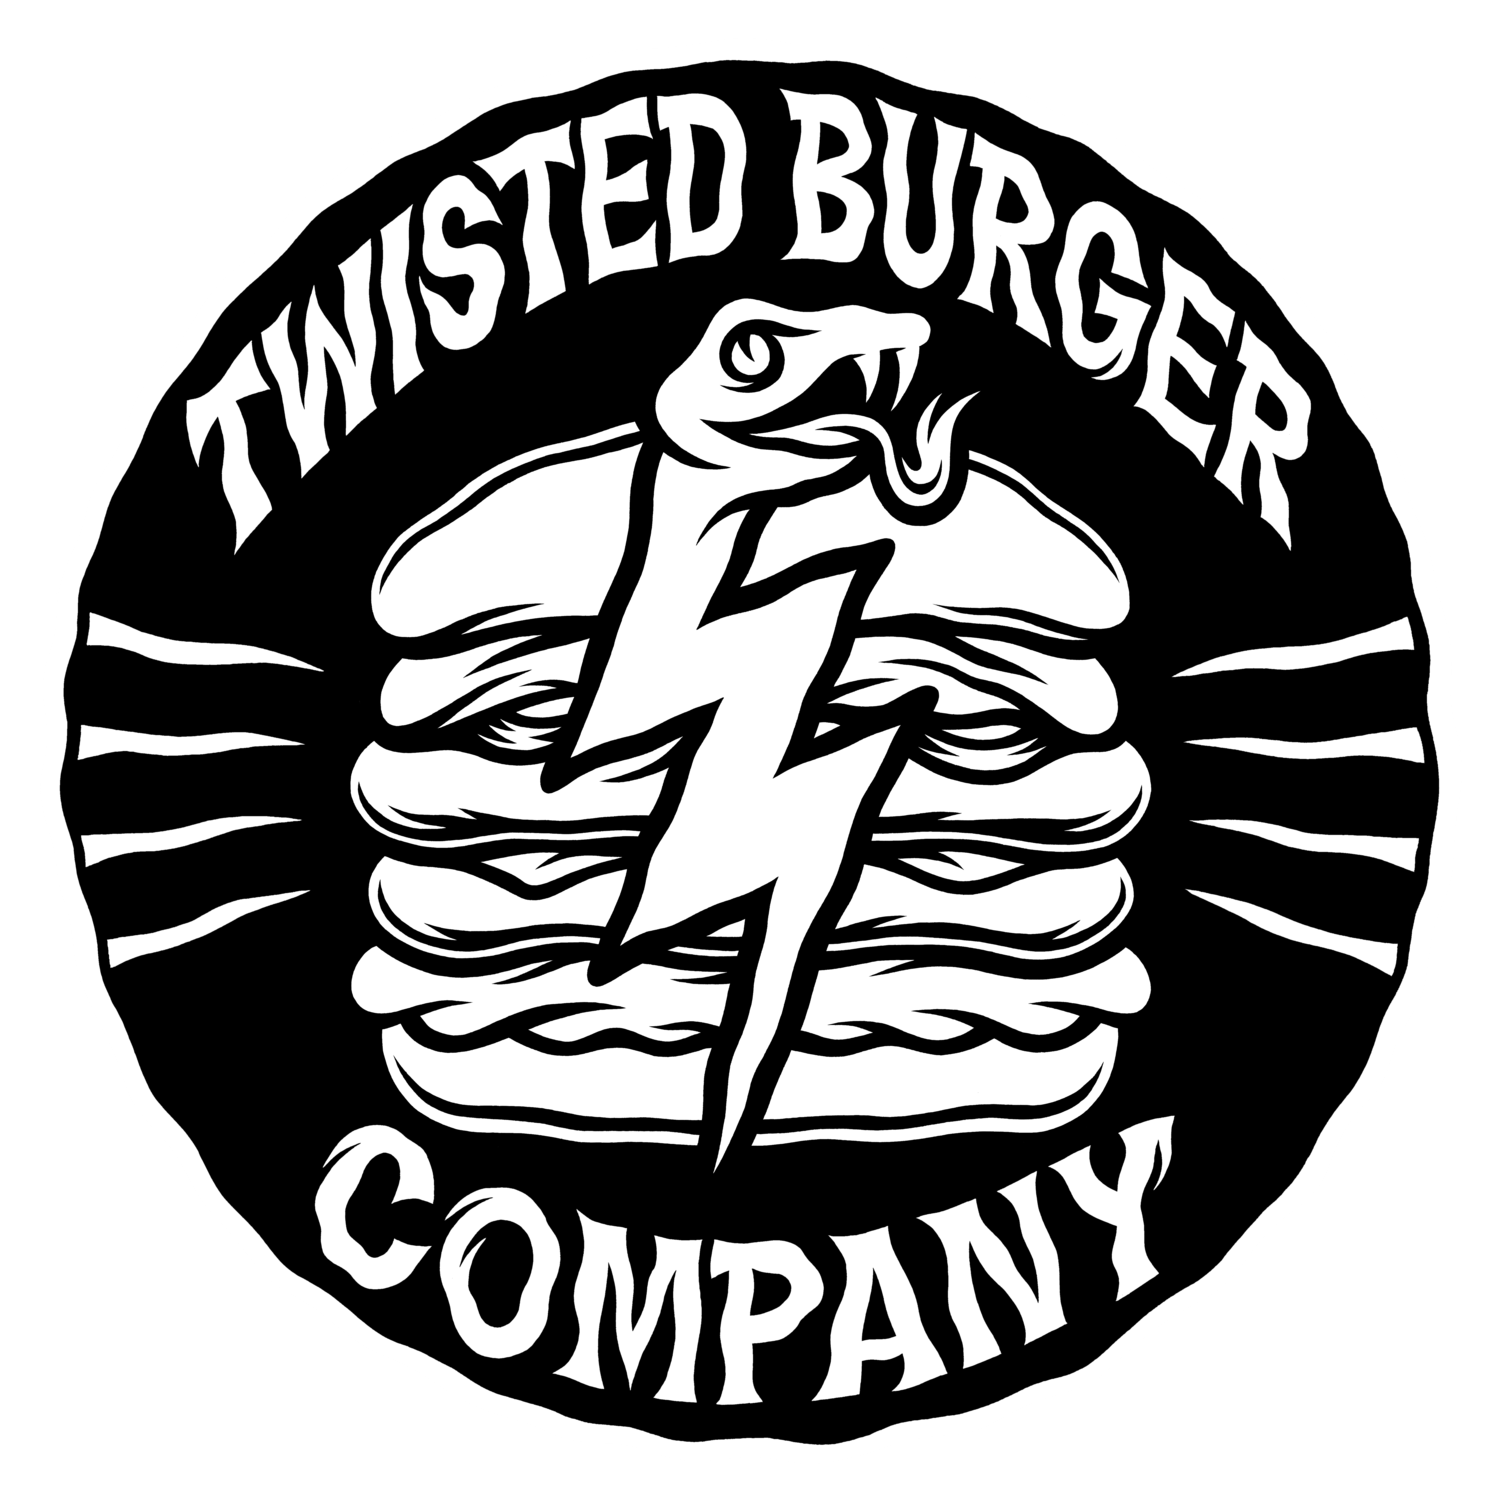 Twisted Burger Company